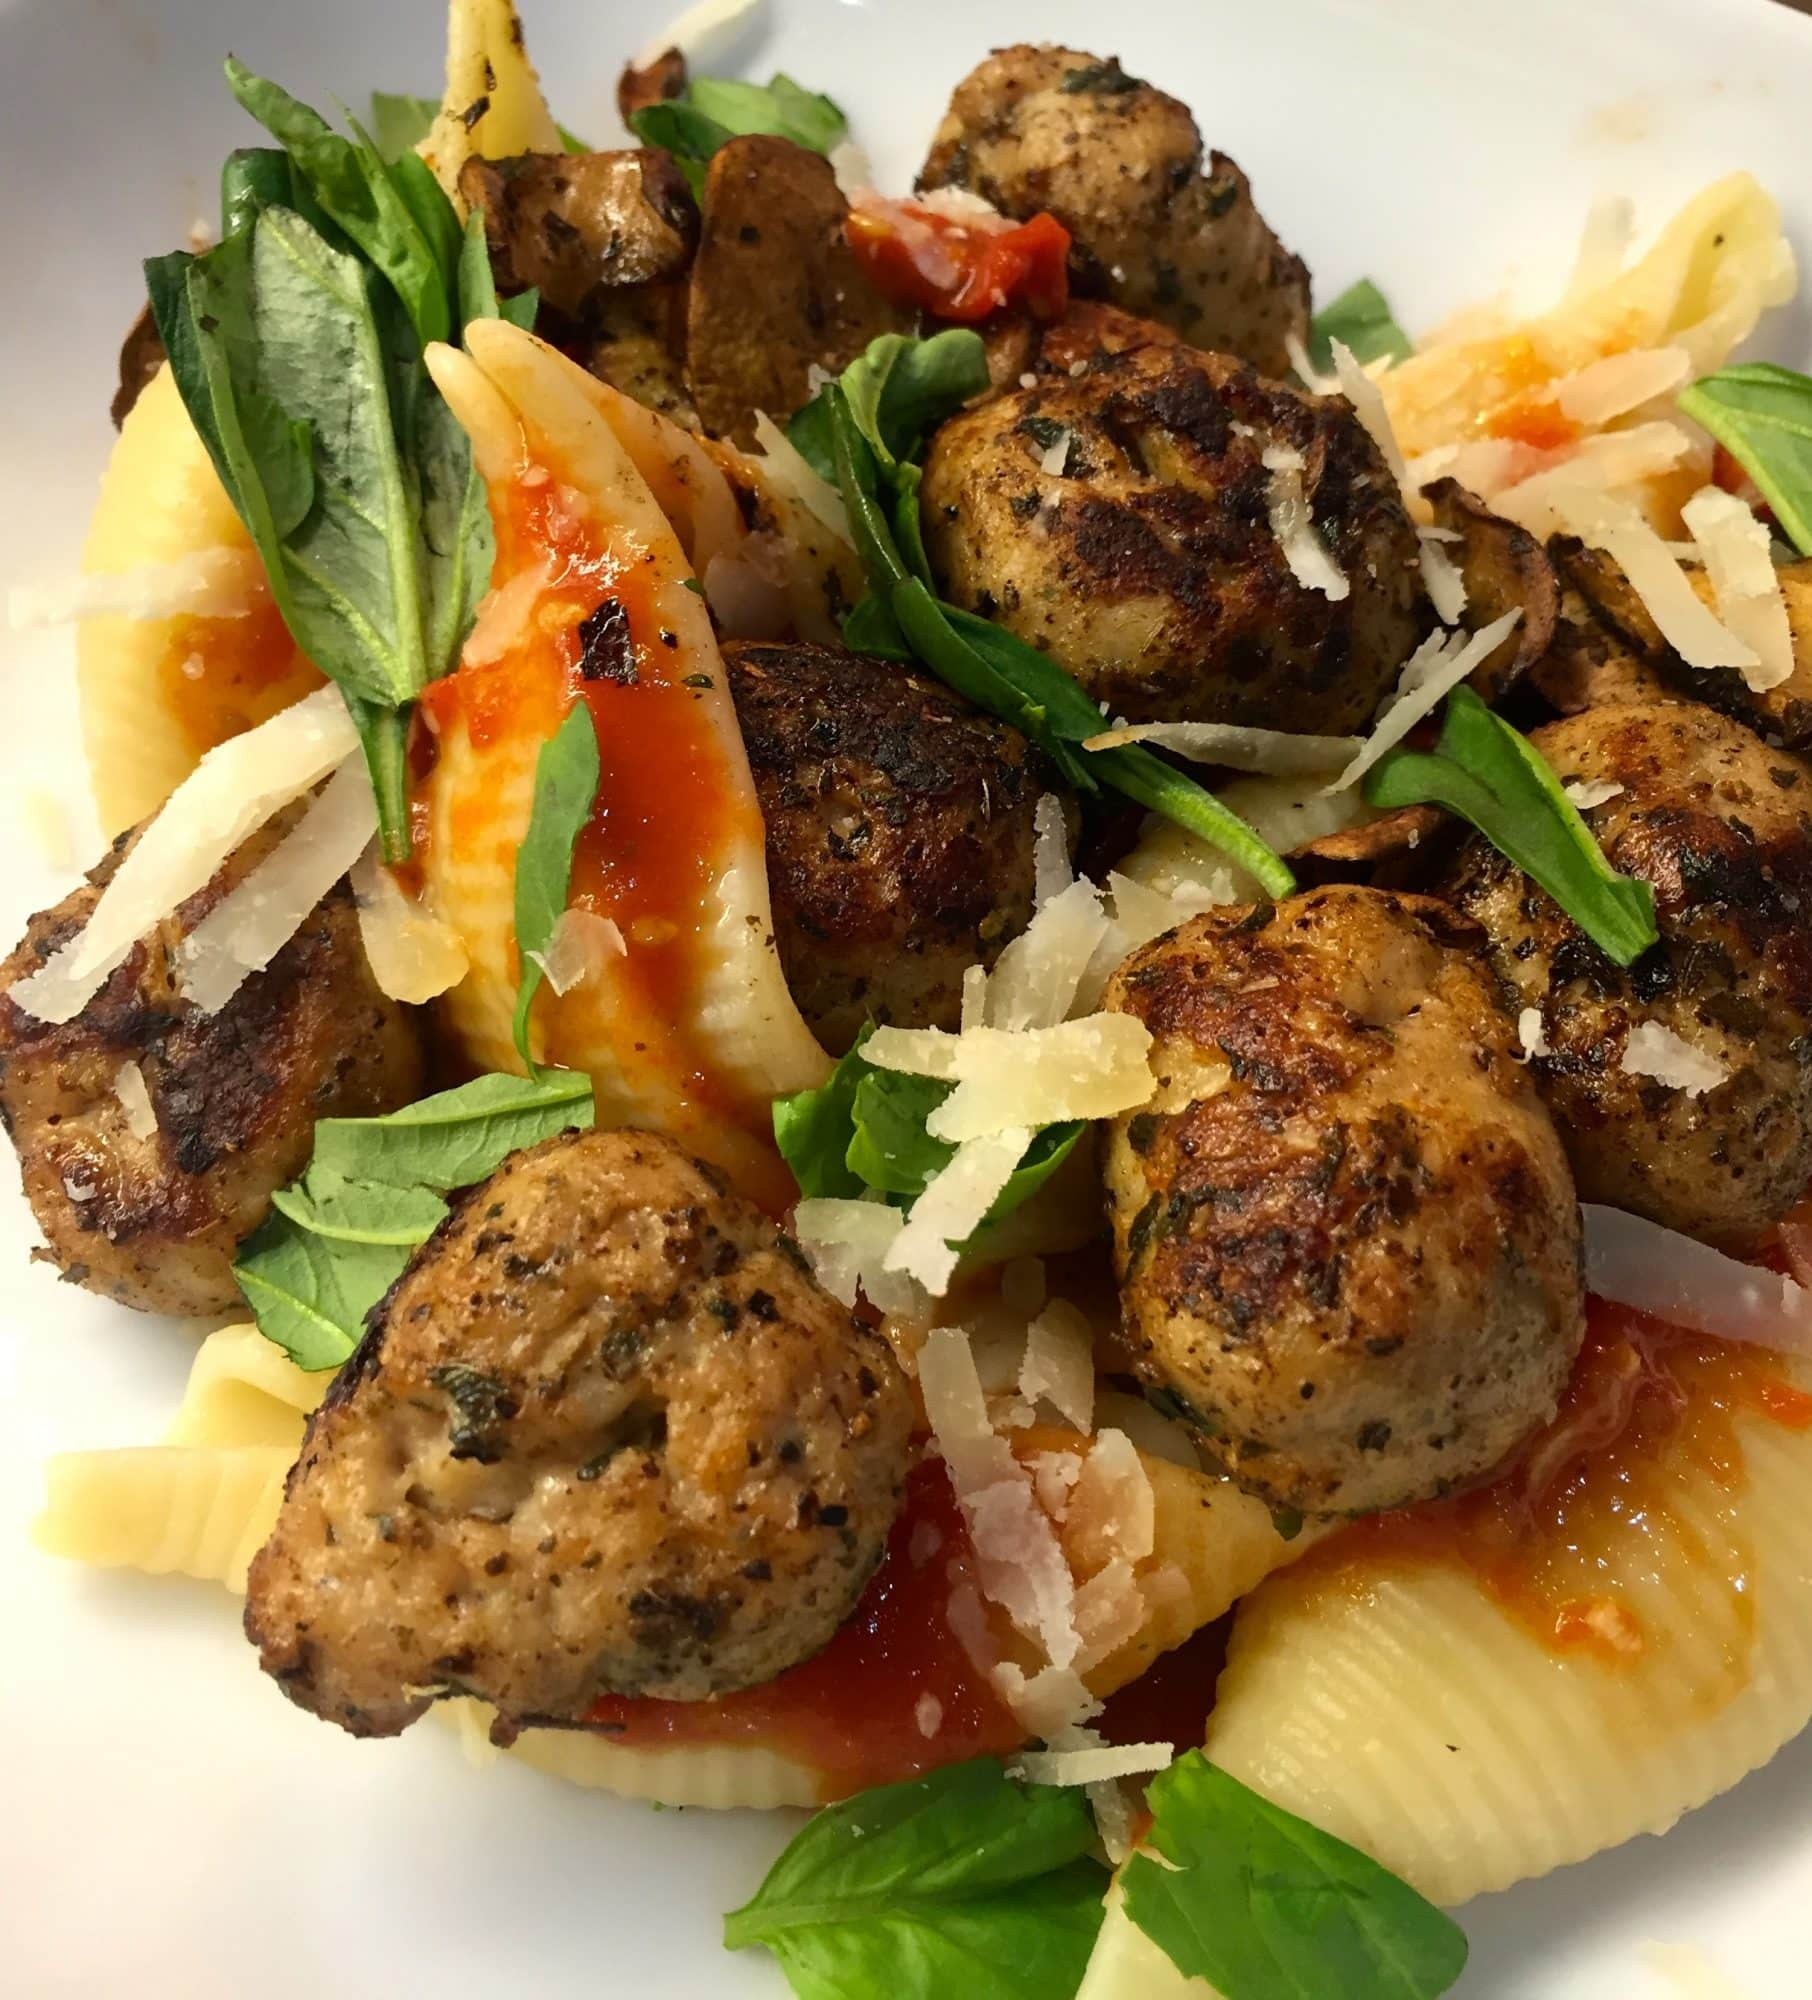 Herby Chicken Italia Meatballs … A Heck of a Dish!